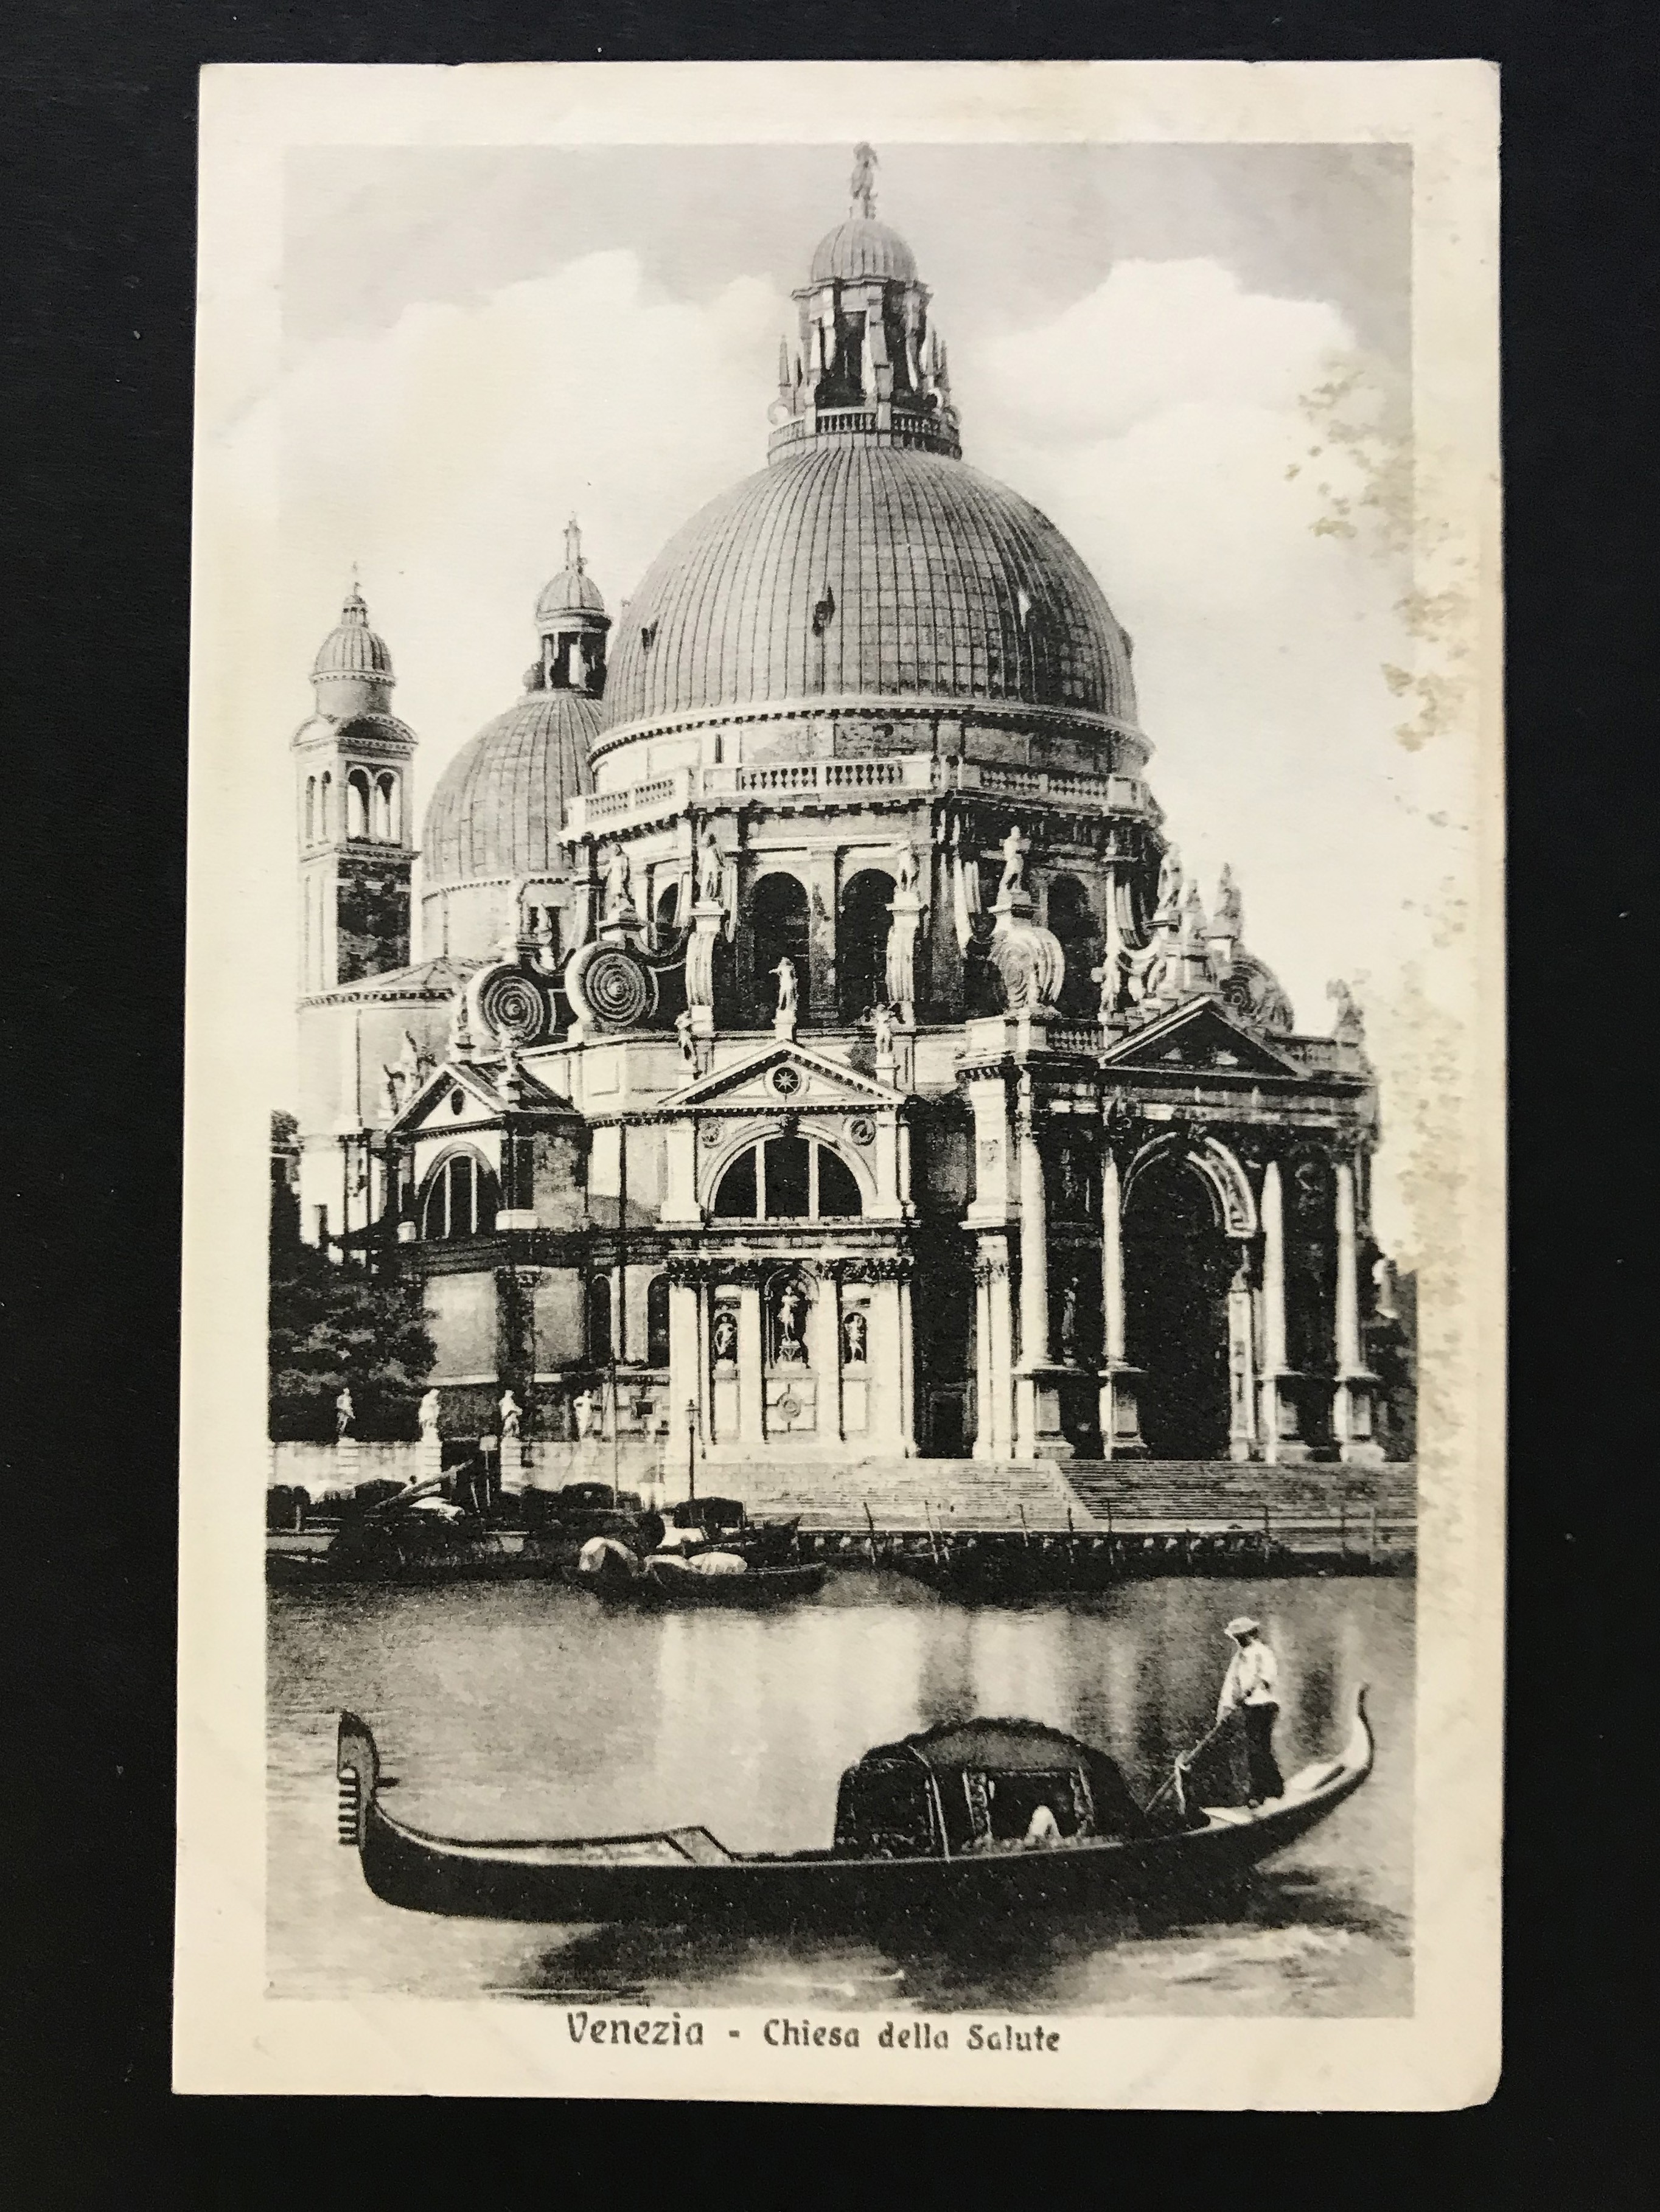 SELECTION OF VENICE RELATED POSTCARDS - Image 23 of 53